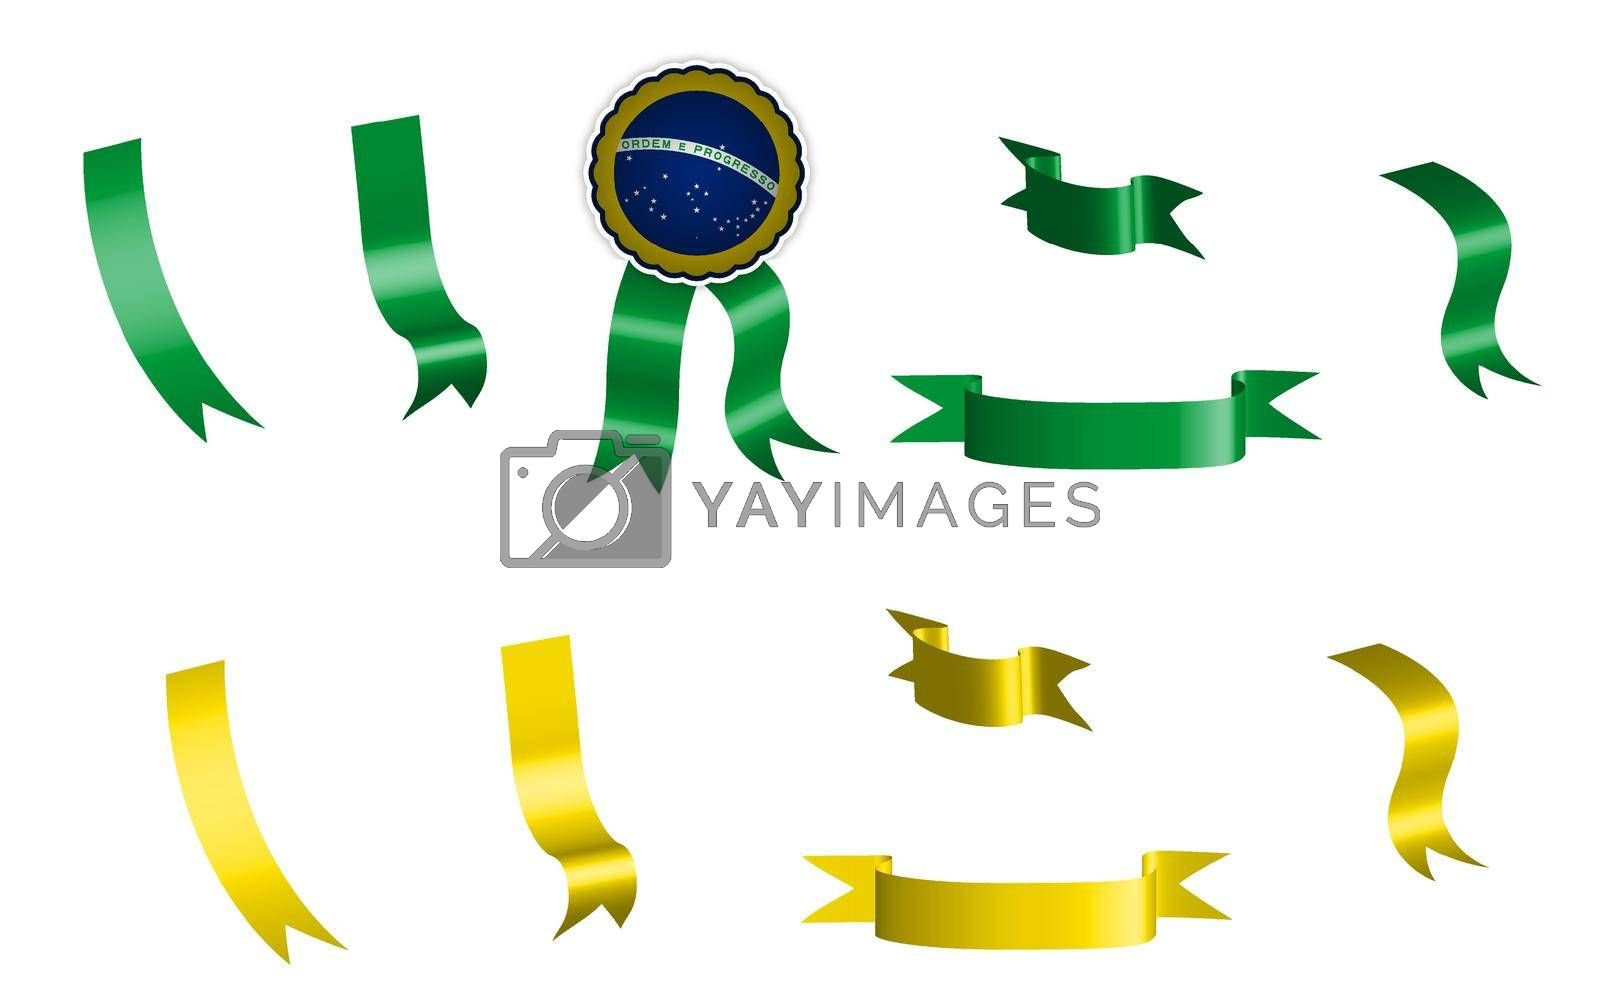 label, set of green and yellow ribbons with tag, in colors of brazil flag. Isolated vector on white background